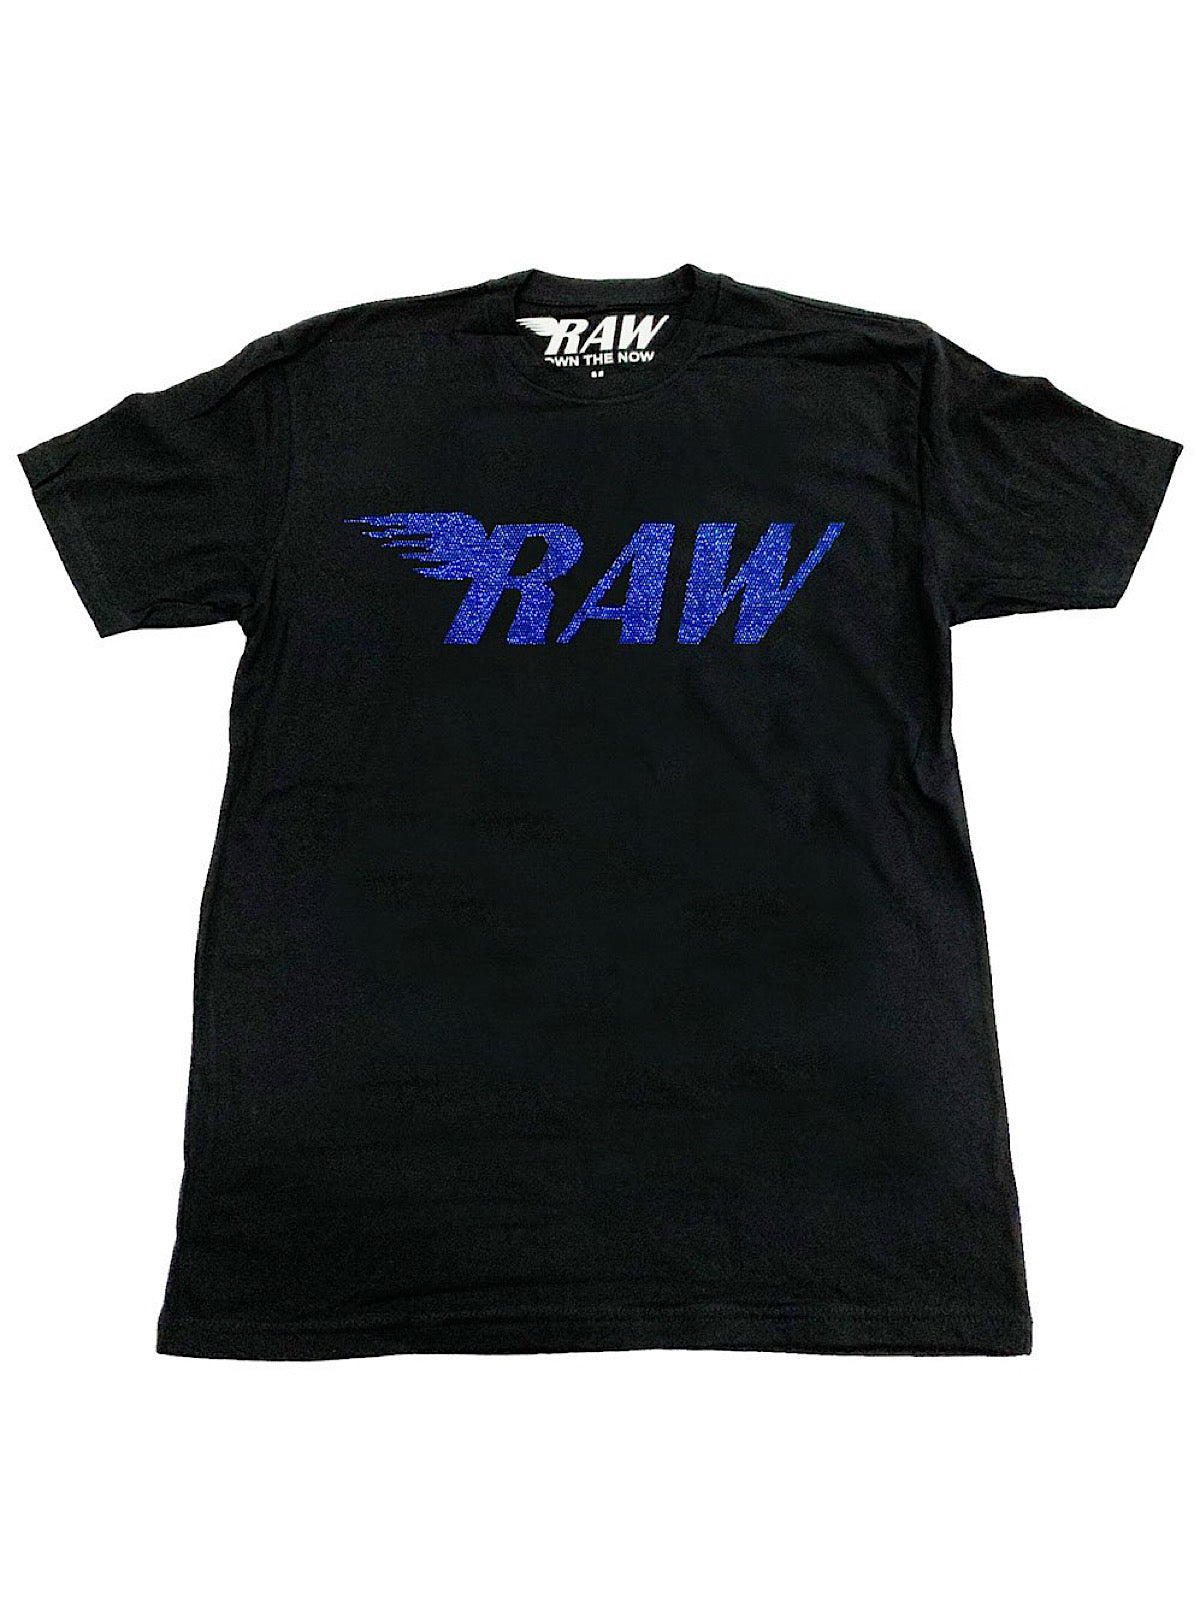 Rawyalty T-Shirt - Raw Stones - Cobalt and Black